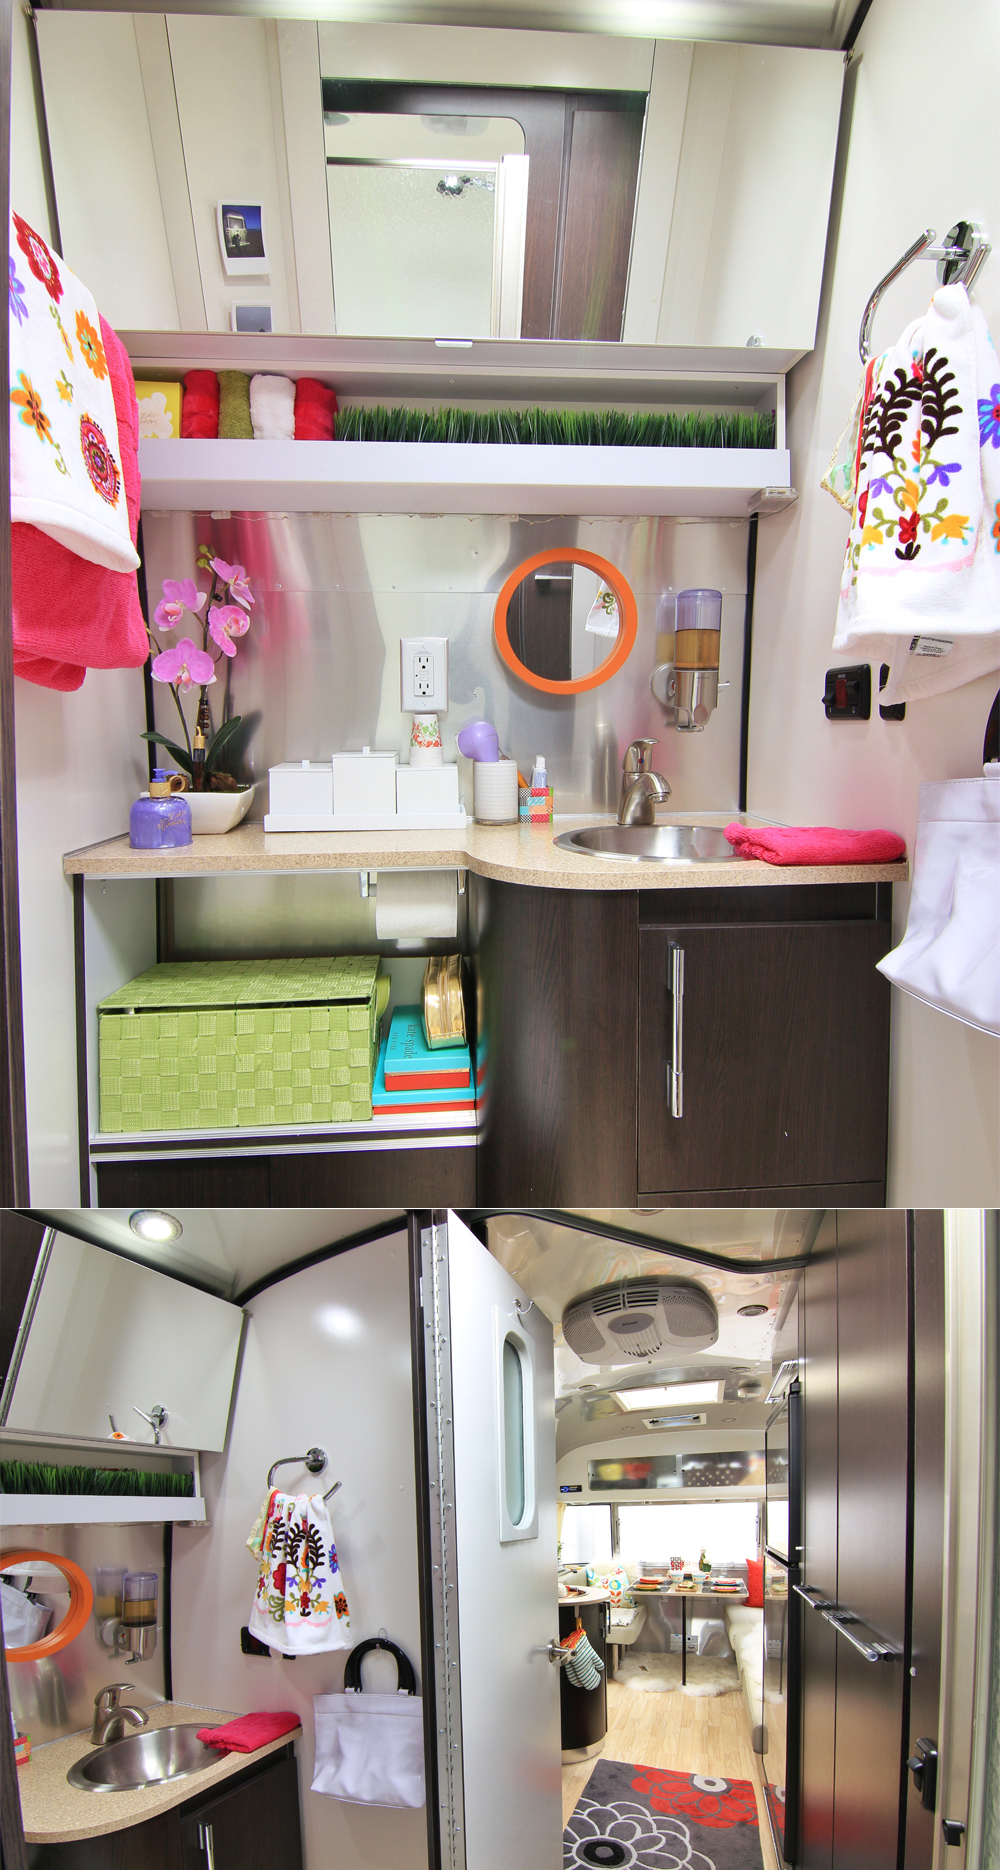 Airstream international signature bathroom